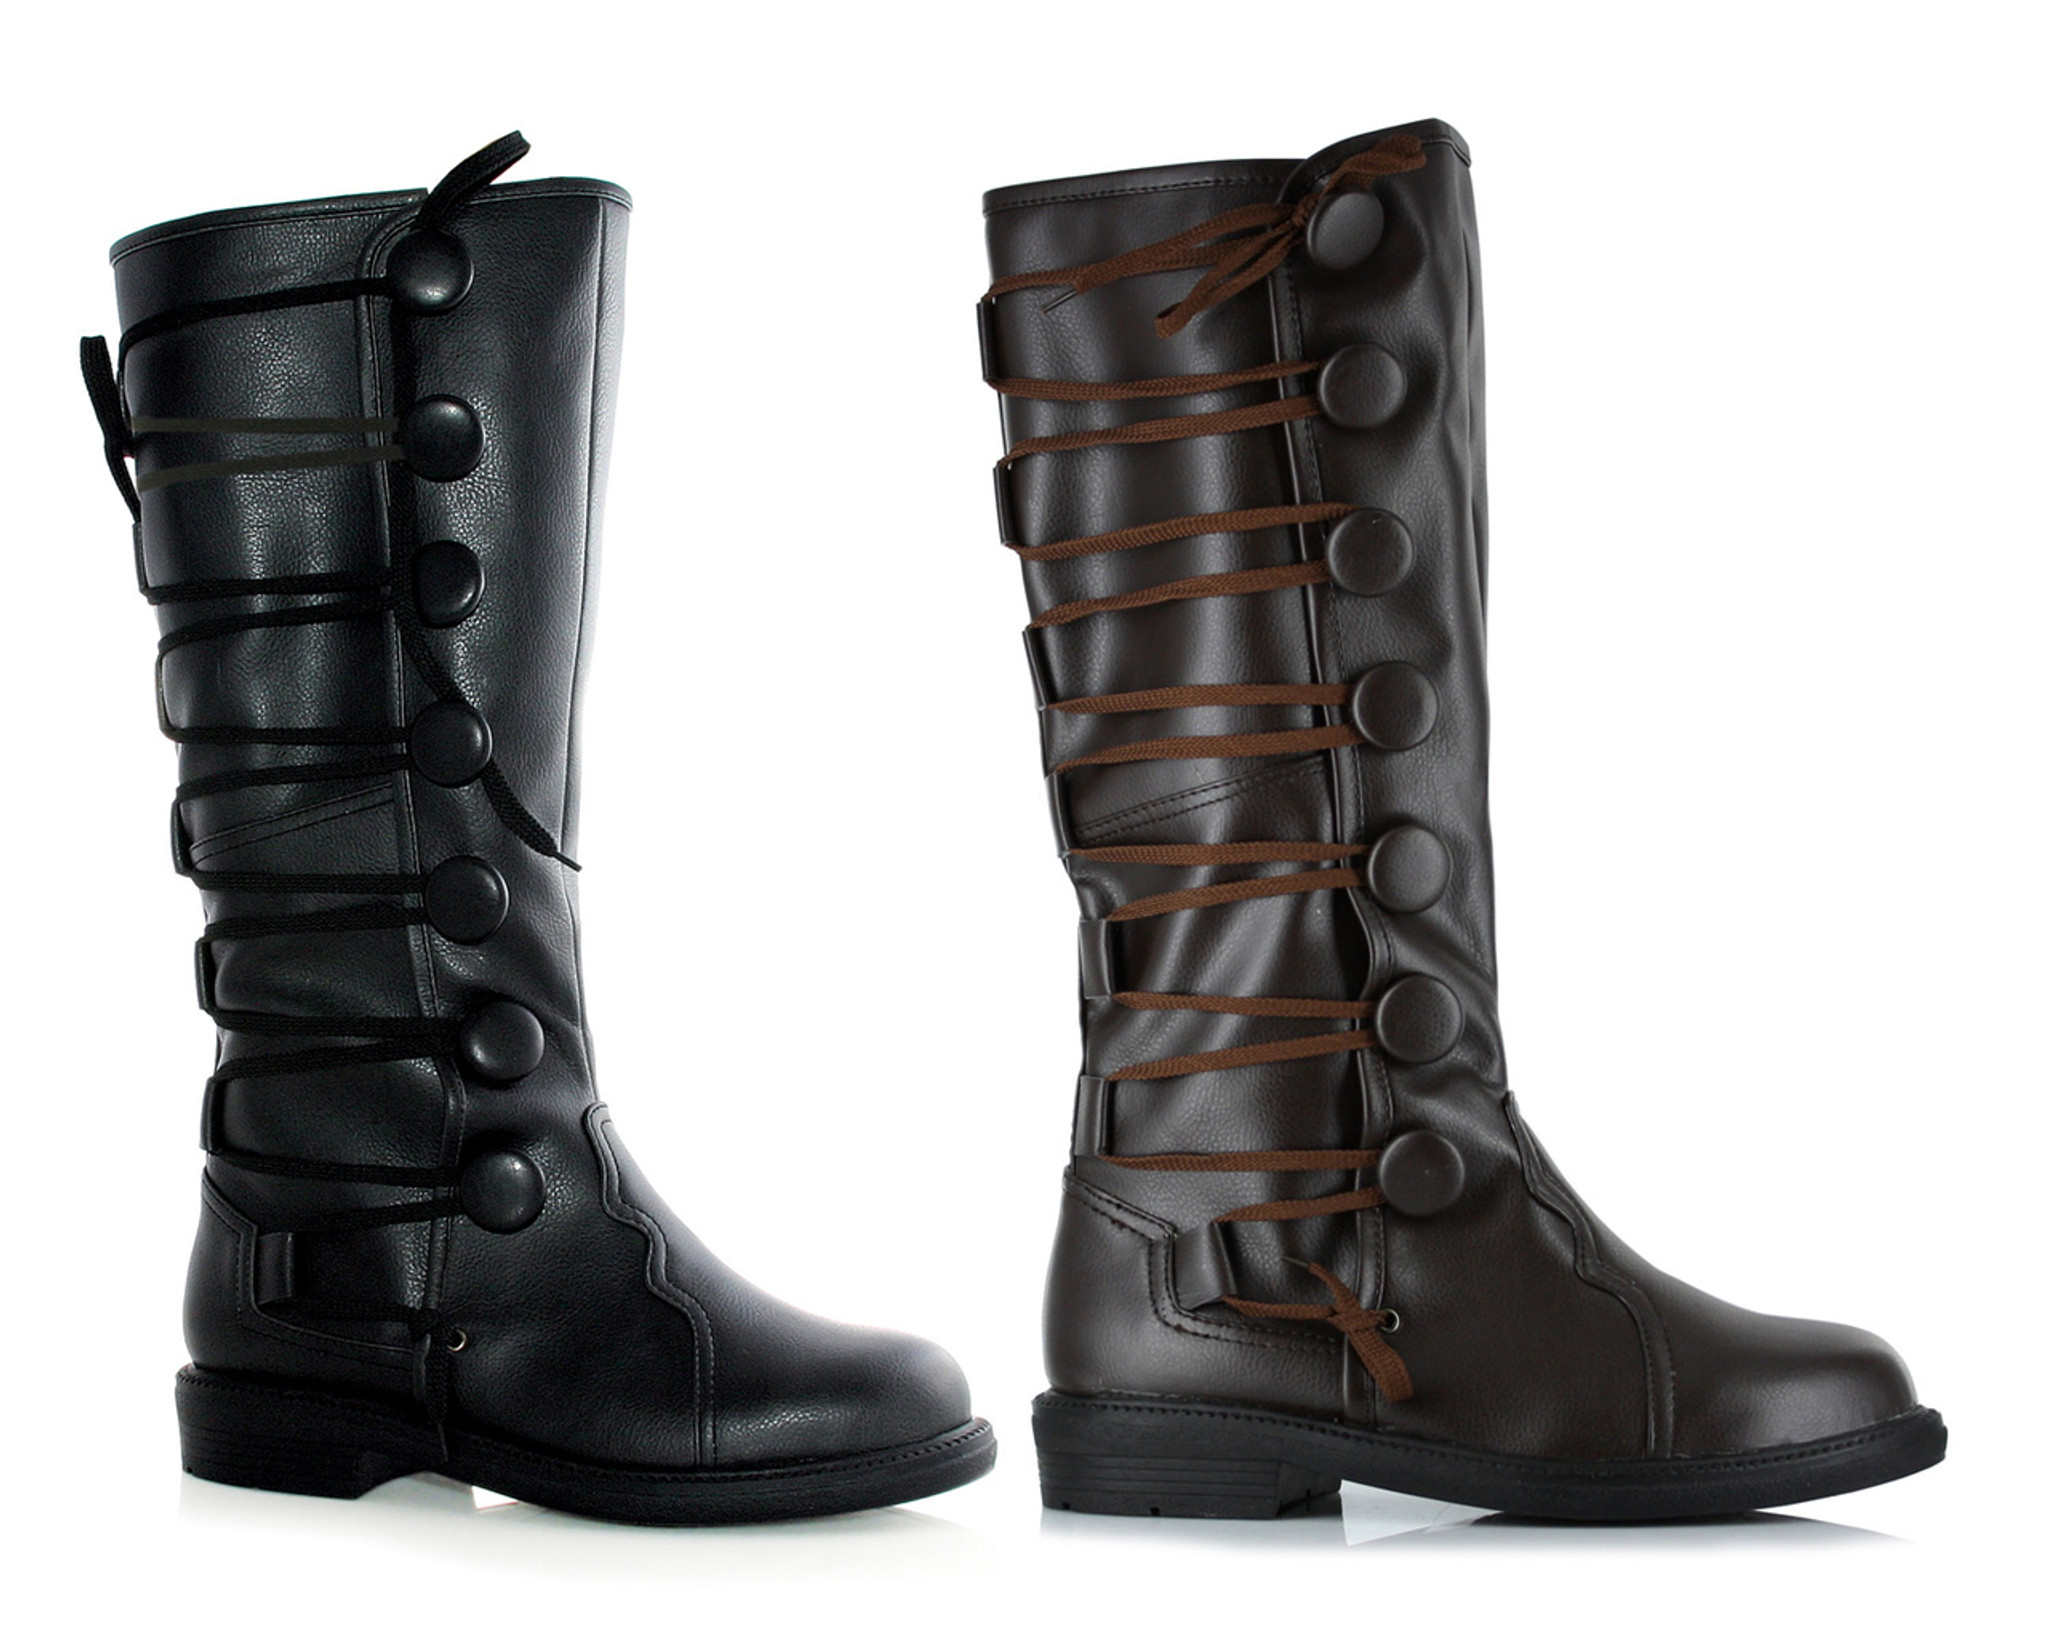 large discount clearance preview of Ren Men's Renaissance Boots or Pirate Boots 1